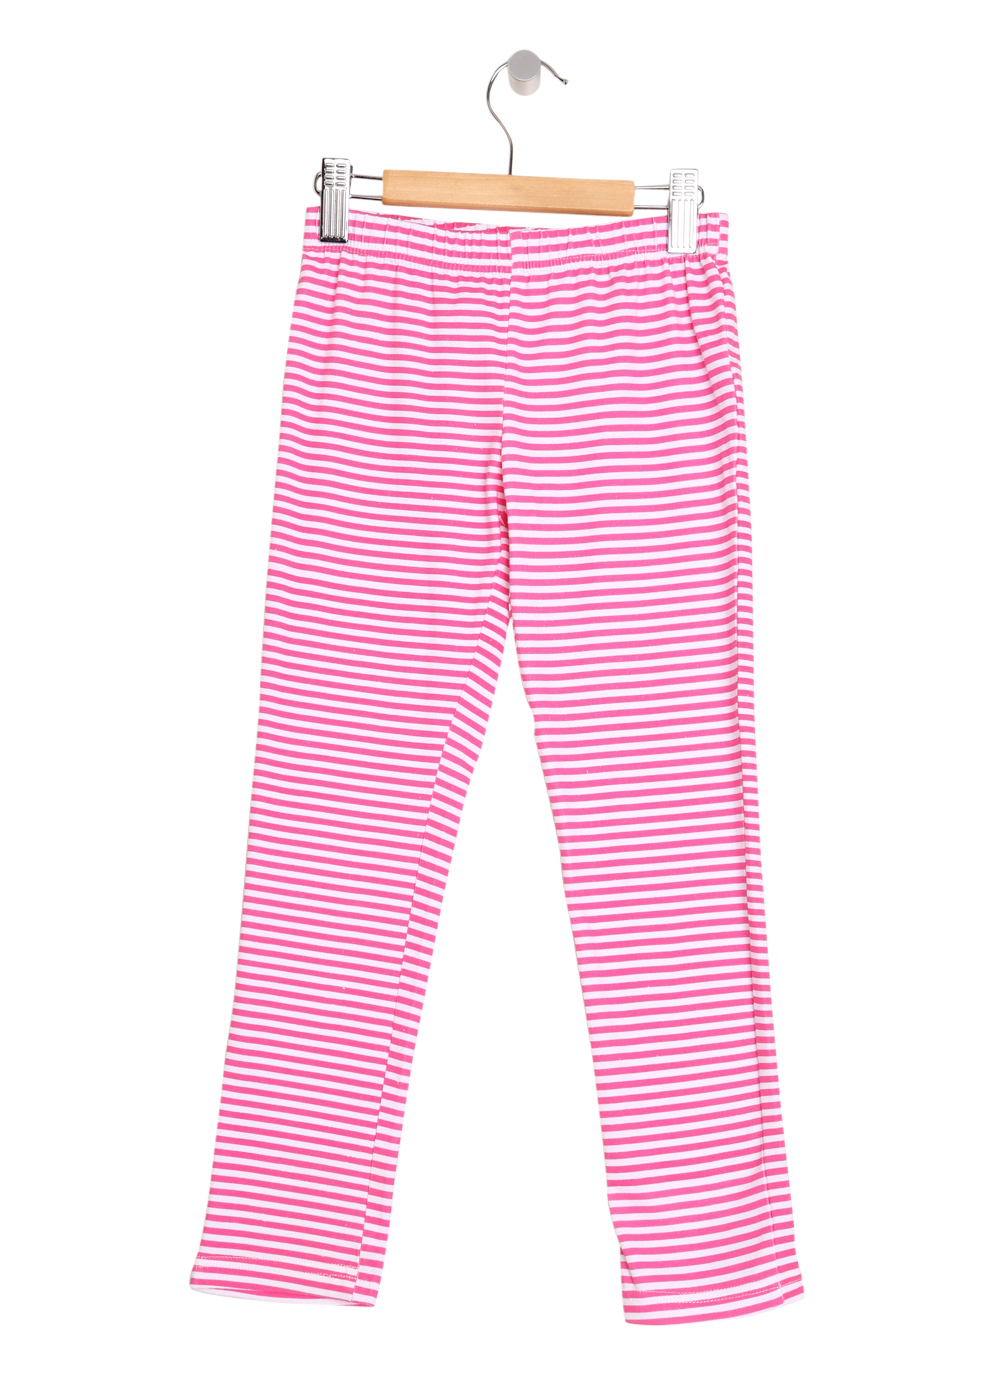 Pink Stripe Girls Leggings